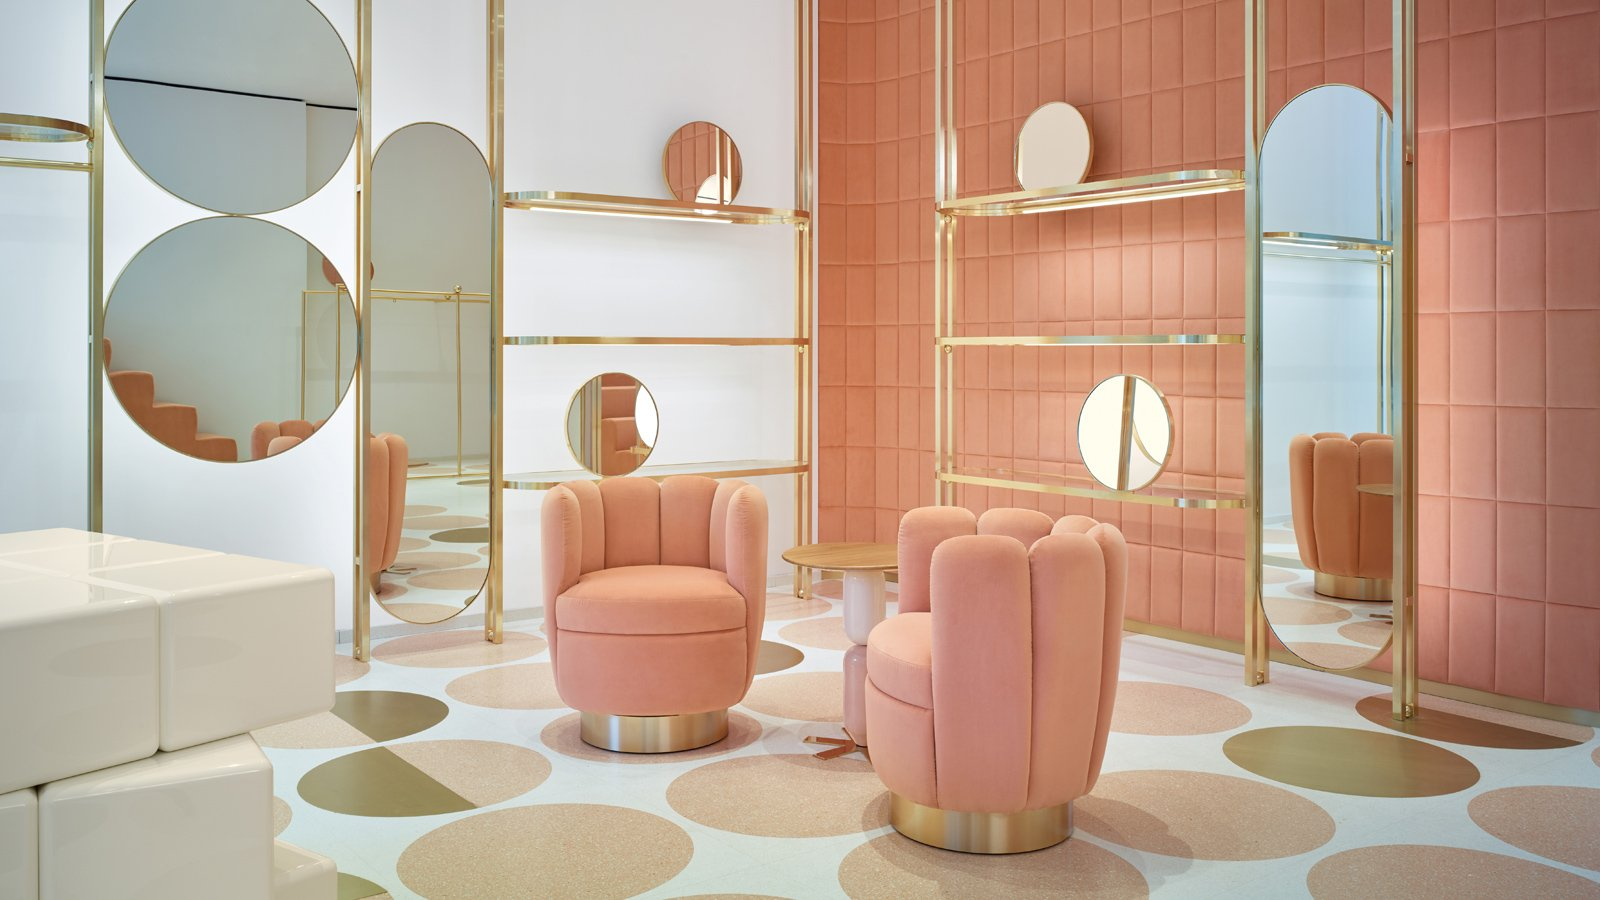 5 Luxury retail store interior designs we want to live in 2